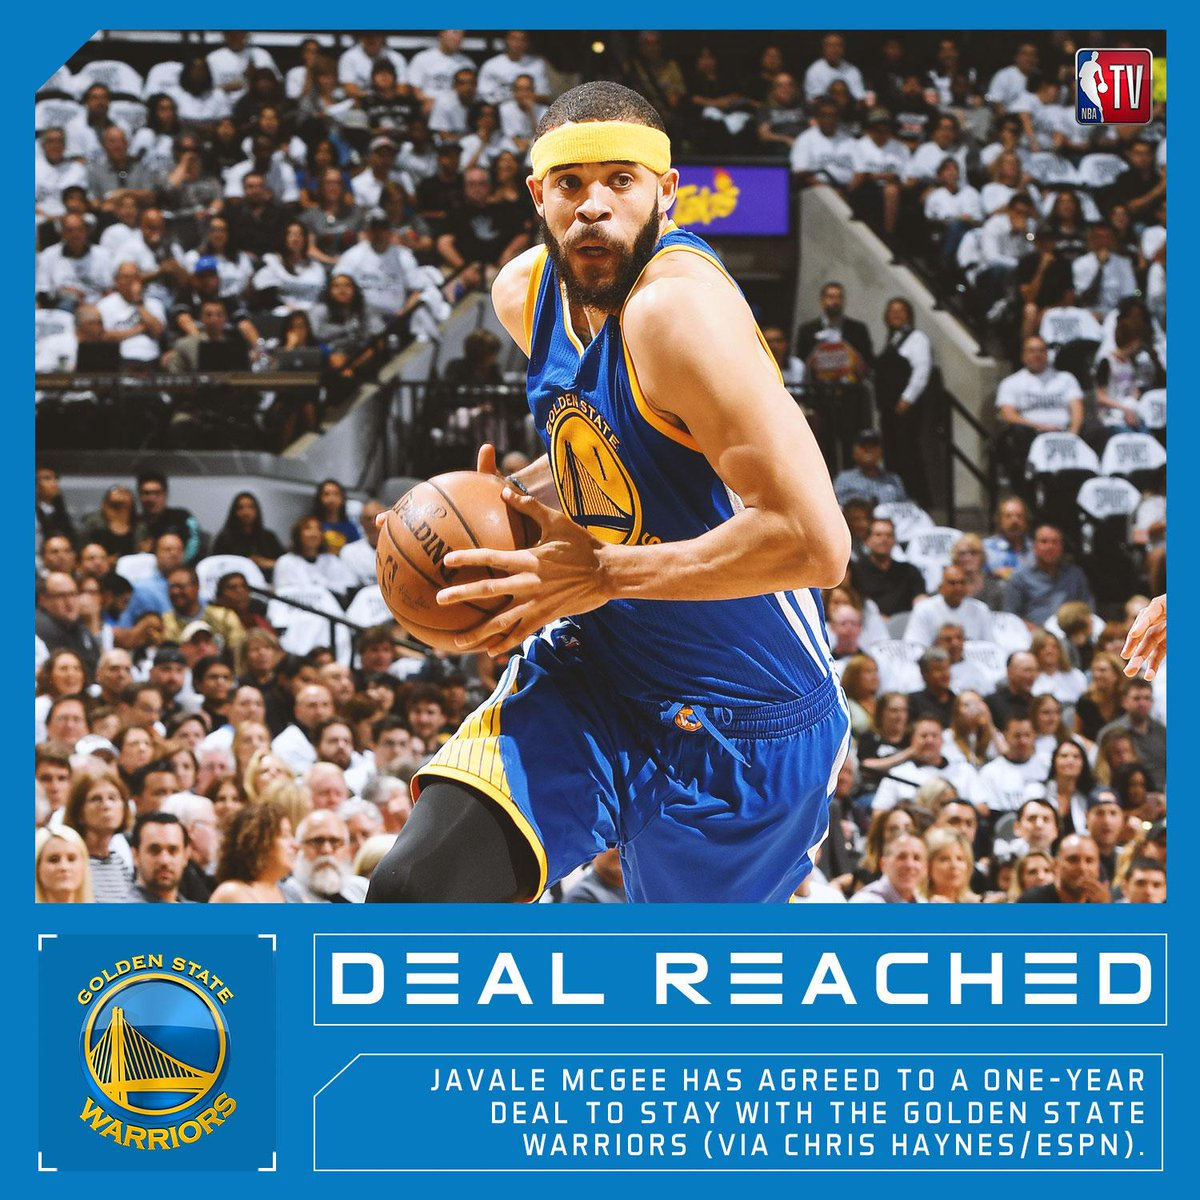 REPORTS: JaVale McGee has agreed to a one-year deal to stay with the Golden State Warriors (via Chris Haynes/ESPN).  https://t.co/xGaJJMlZe4